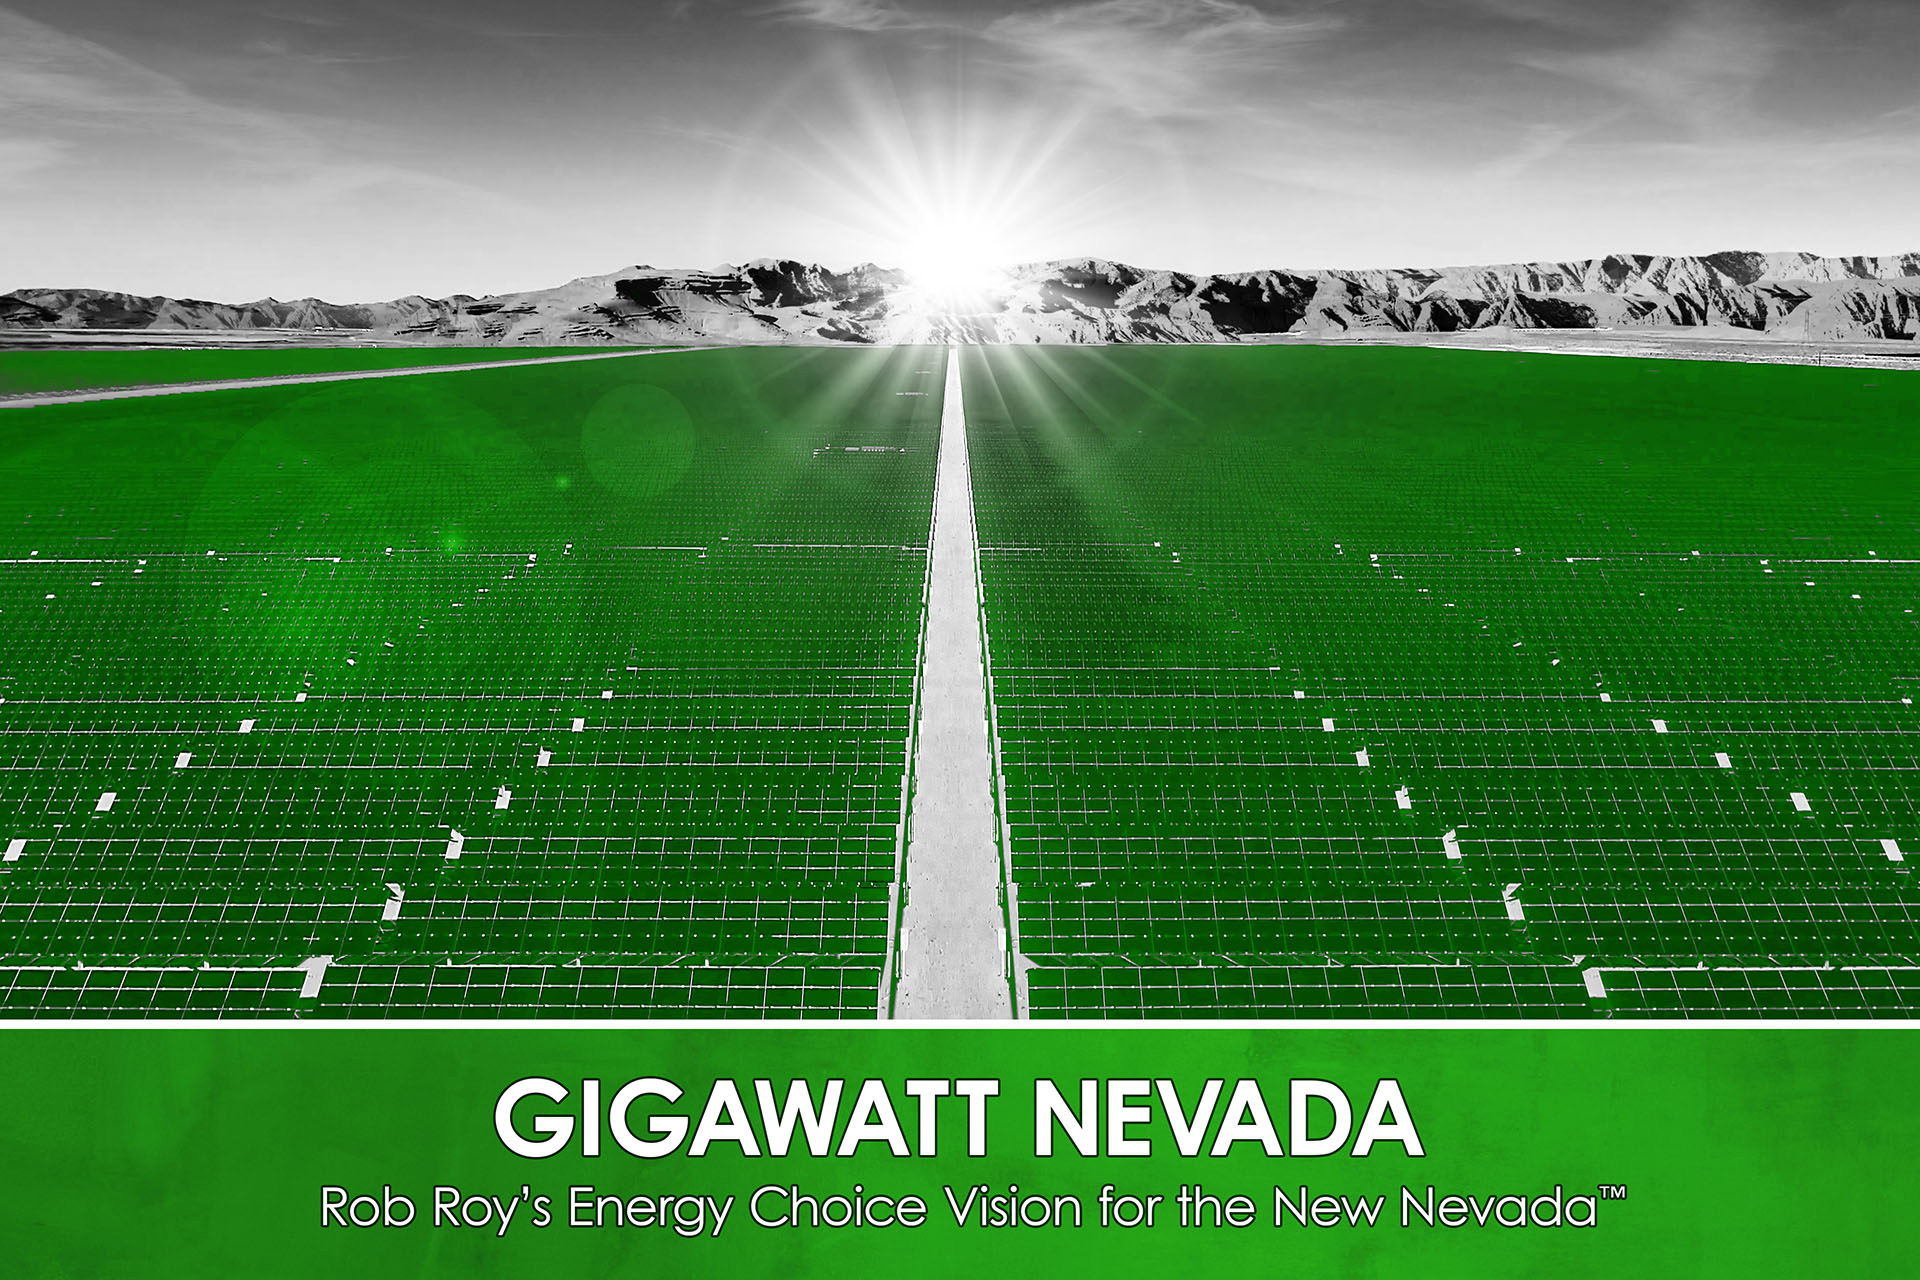 Switch Announces Rob Roy's Gigawatt Nevada, the Largest Solar Project in the United States